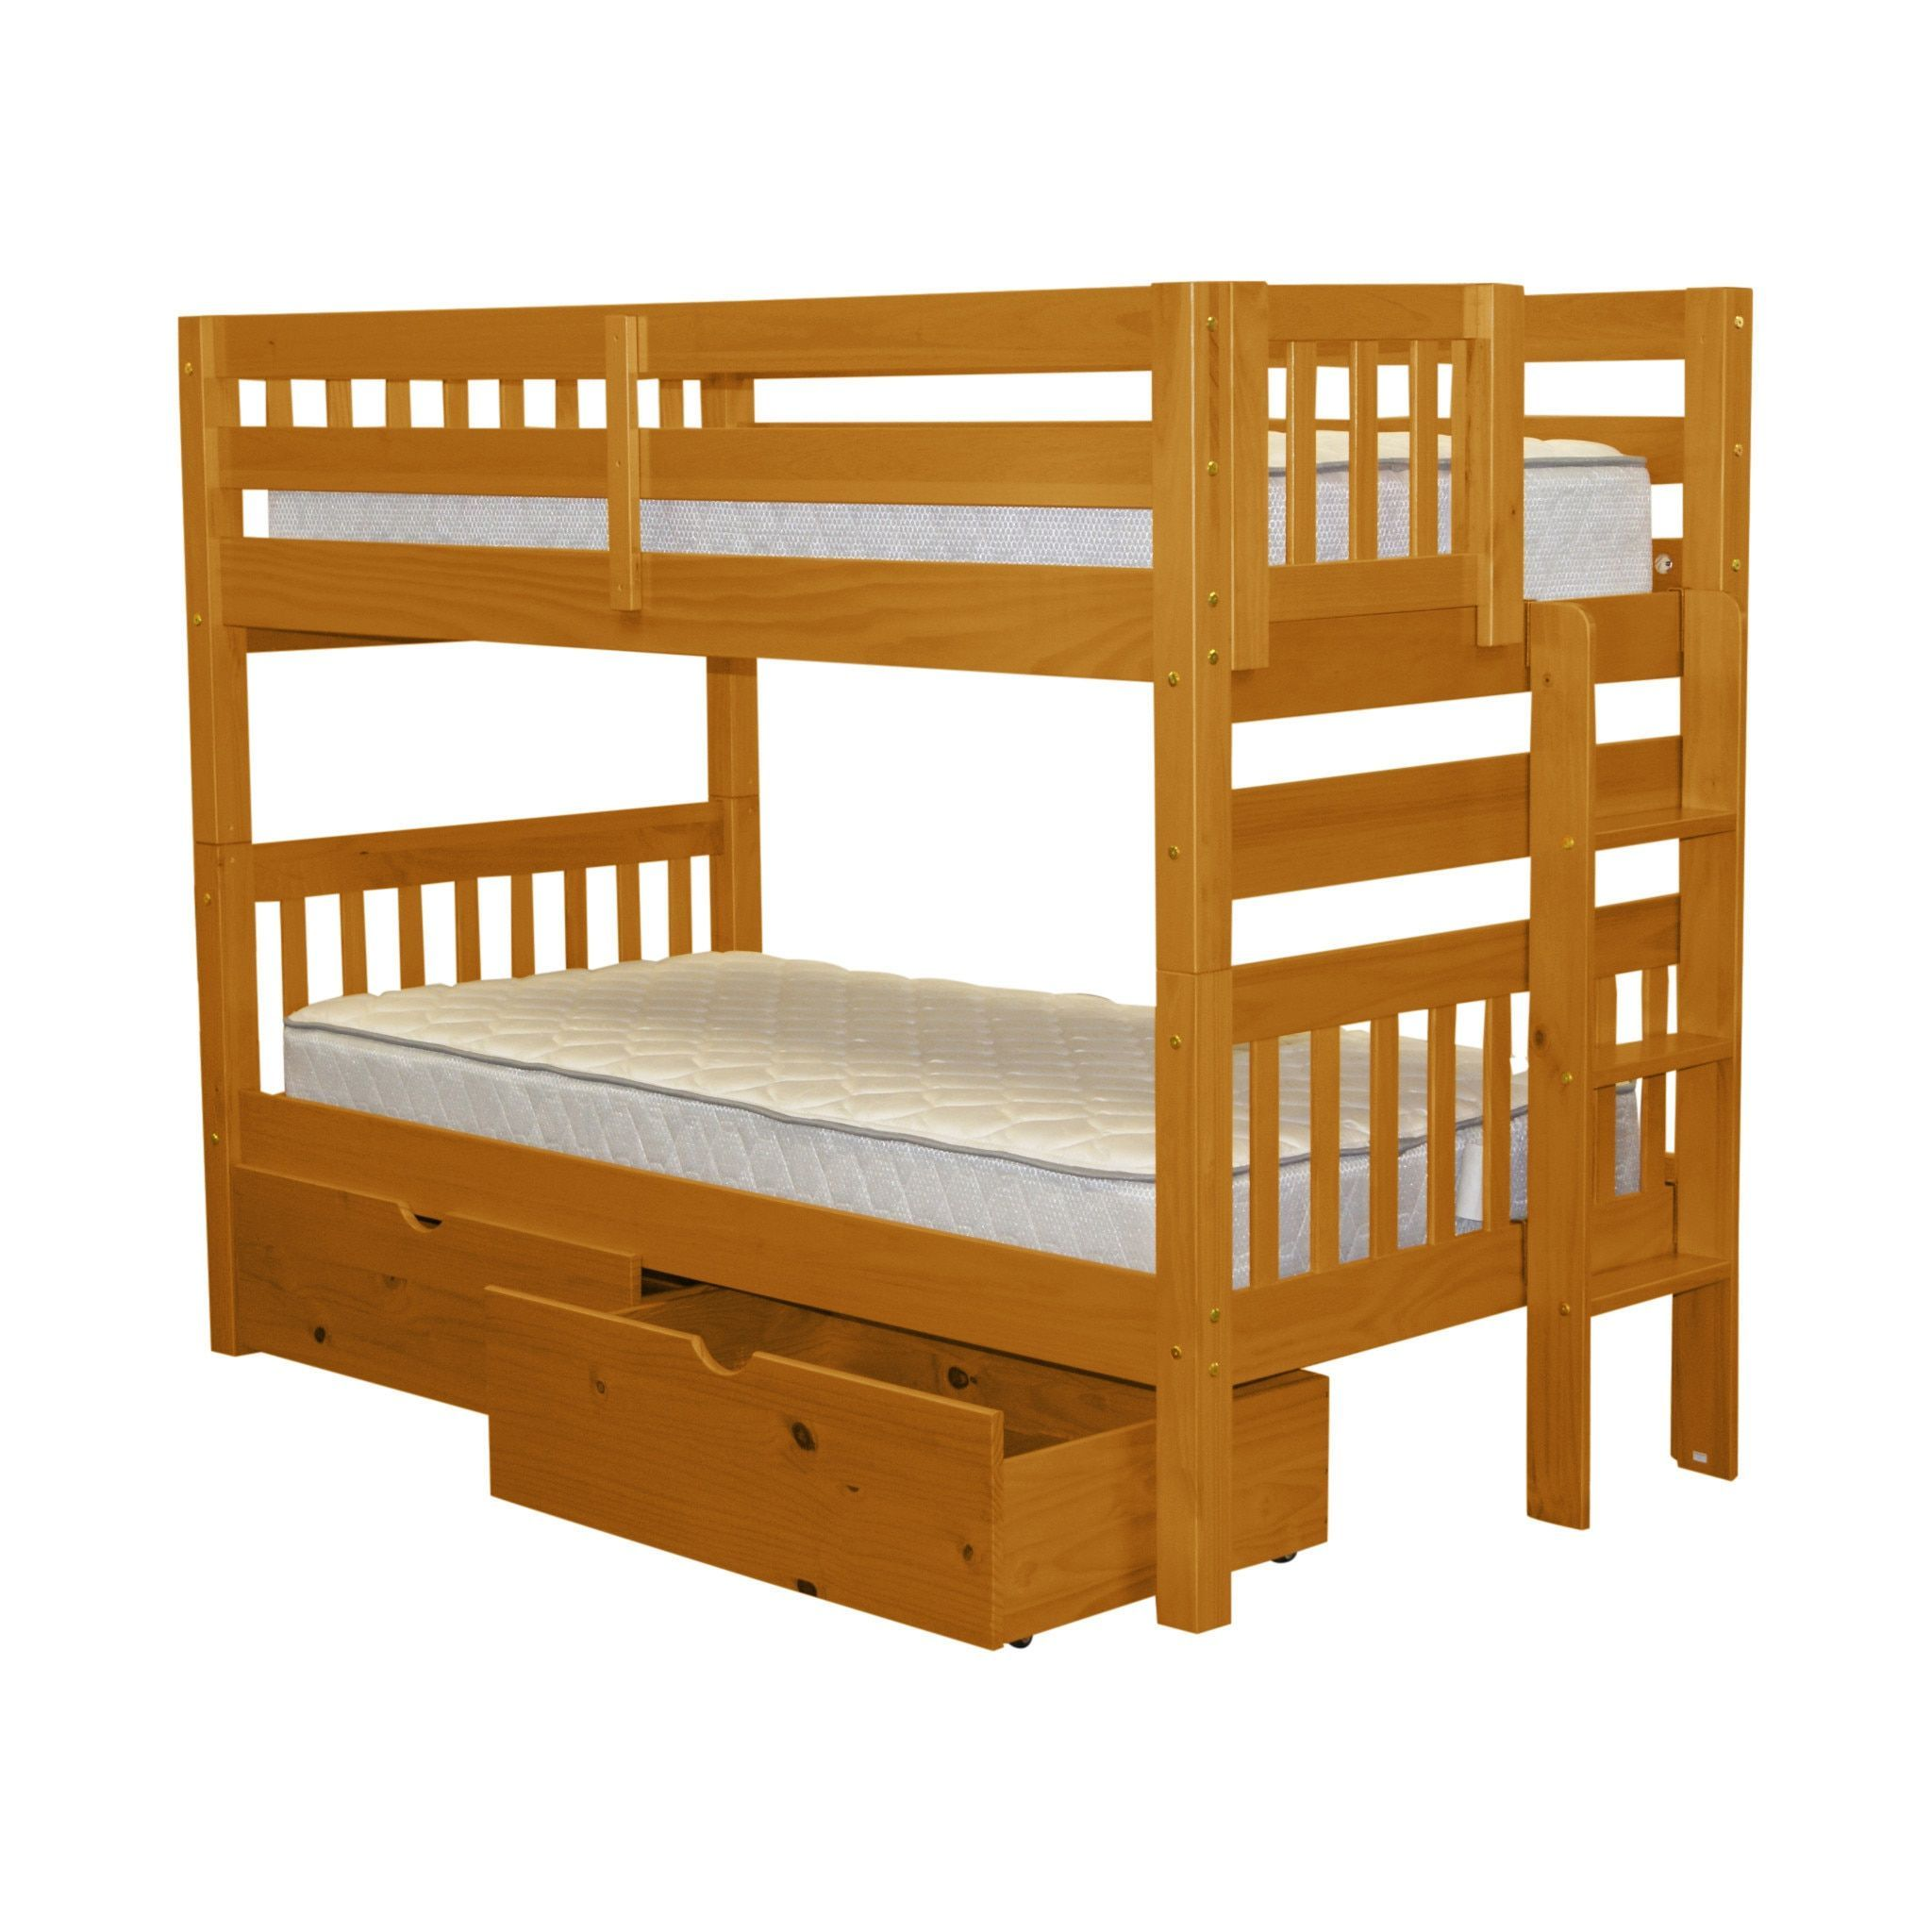 Bedz King Bunk Bed Twin Over Twin With End Ladder And 2